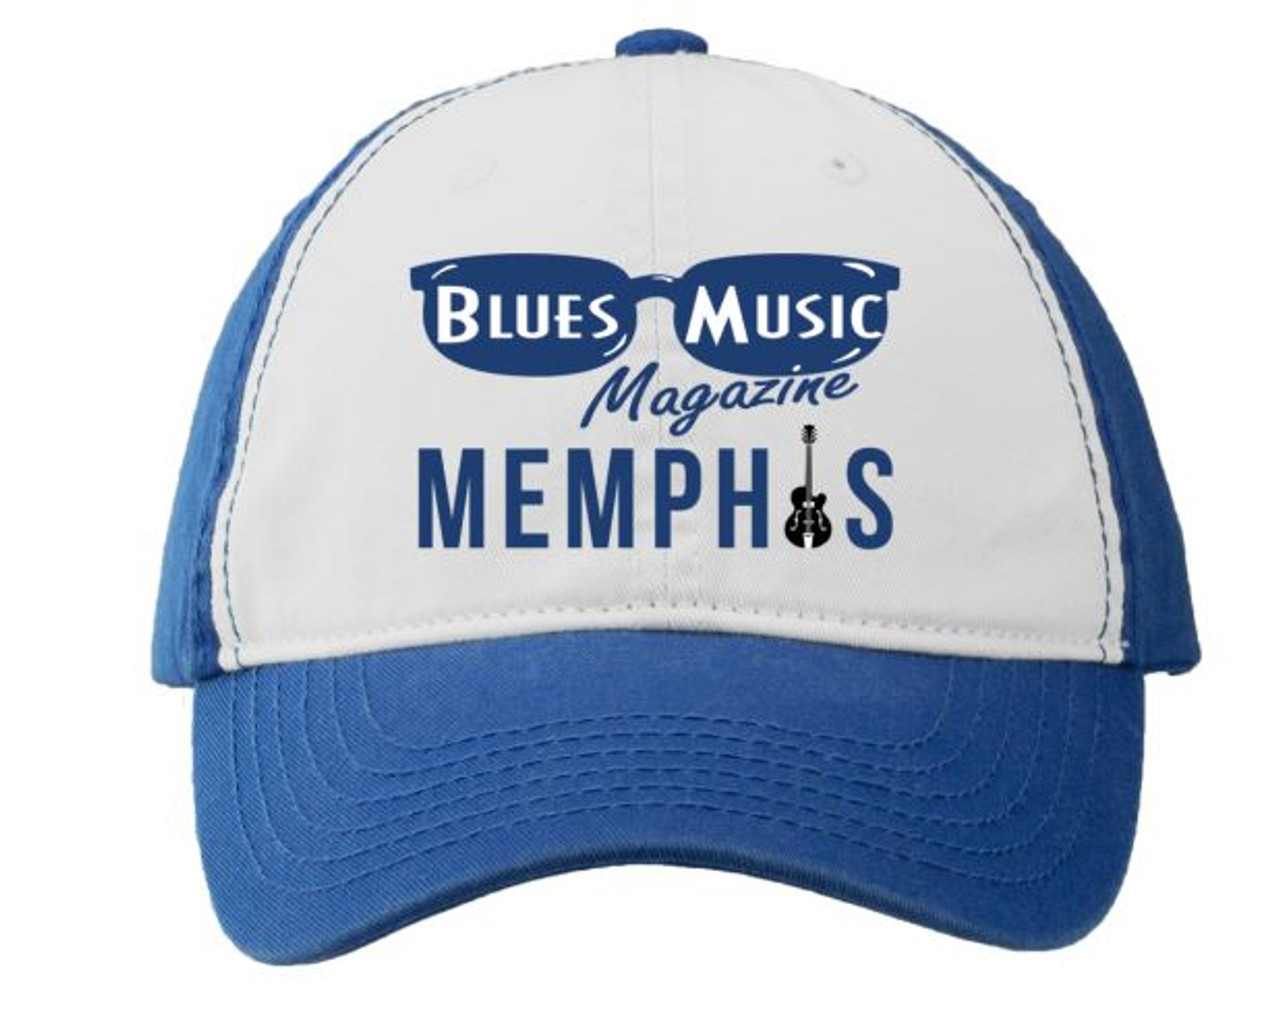 BLUES MUSIC MAGAZINE MEMPHIS ROYAL BLUE & WHITE EMBROIDERED HAT